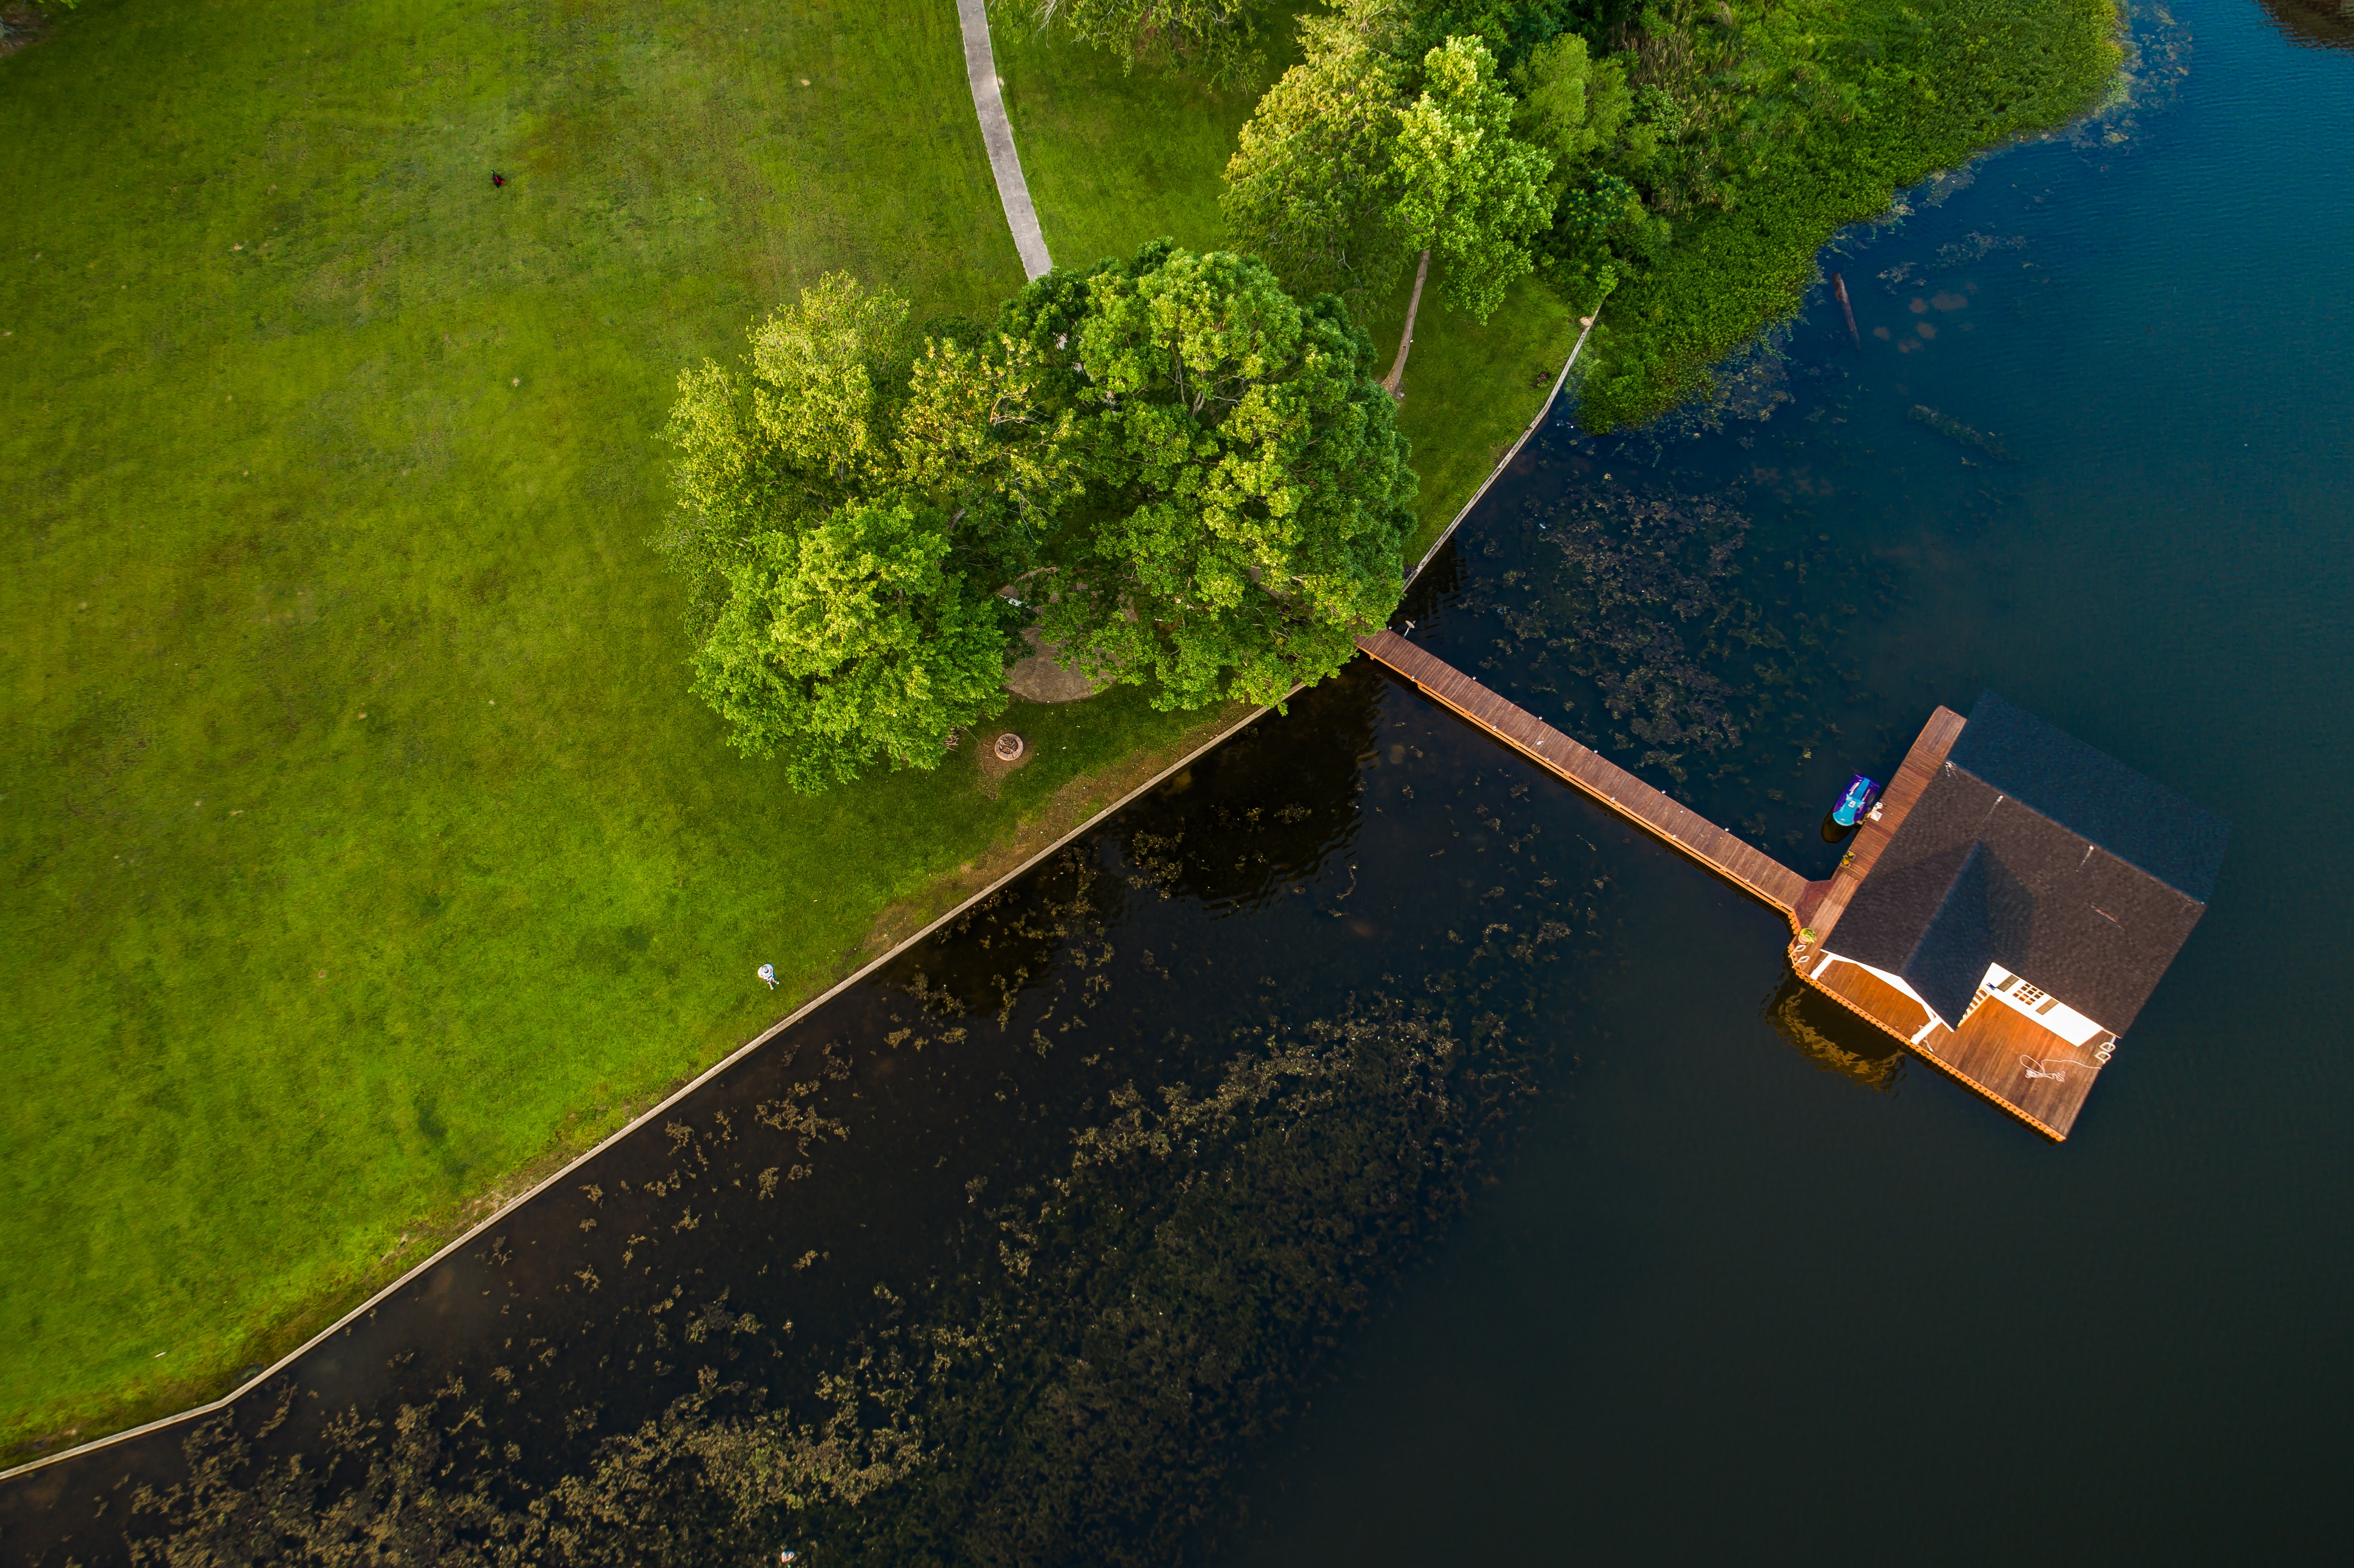 A drone shot of a boathouse on a lake near a green park